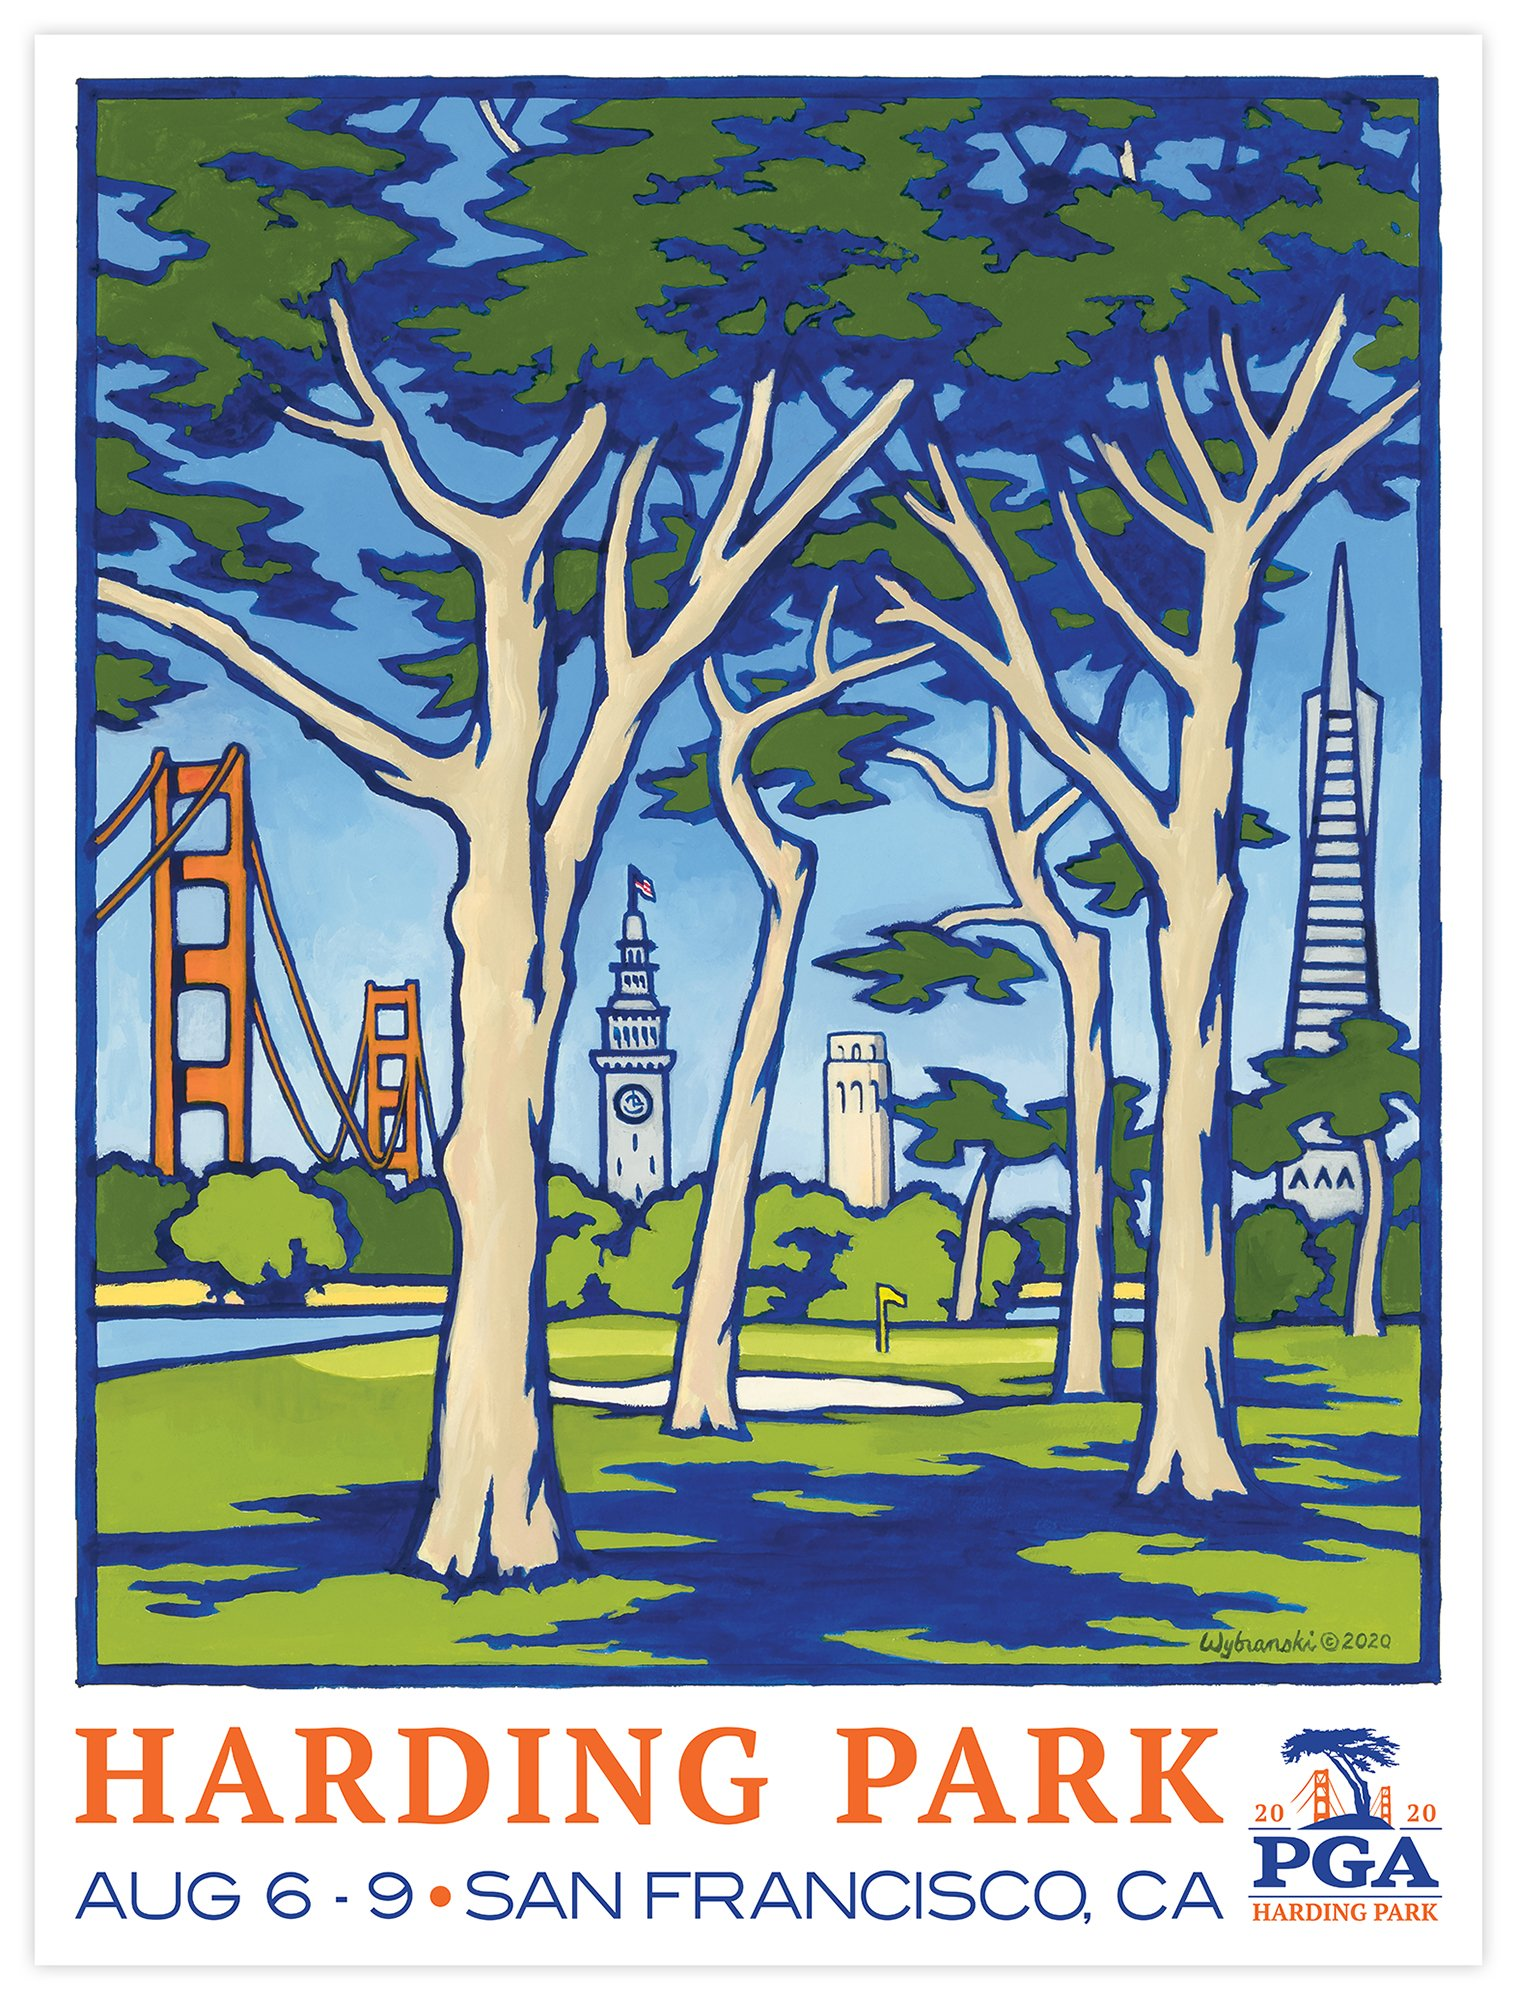 Pga Championship Lee Wybranski Print Golf Club Harding Park He also provides pointers on canvas preparation, use of mediums and paint thinners. 2020 pga championship harding park poster print wrapped canvas